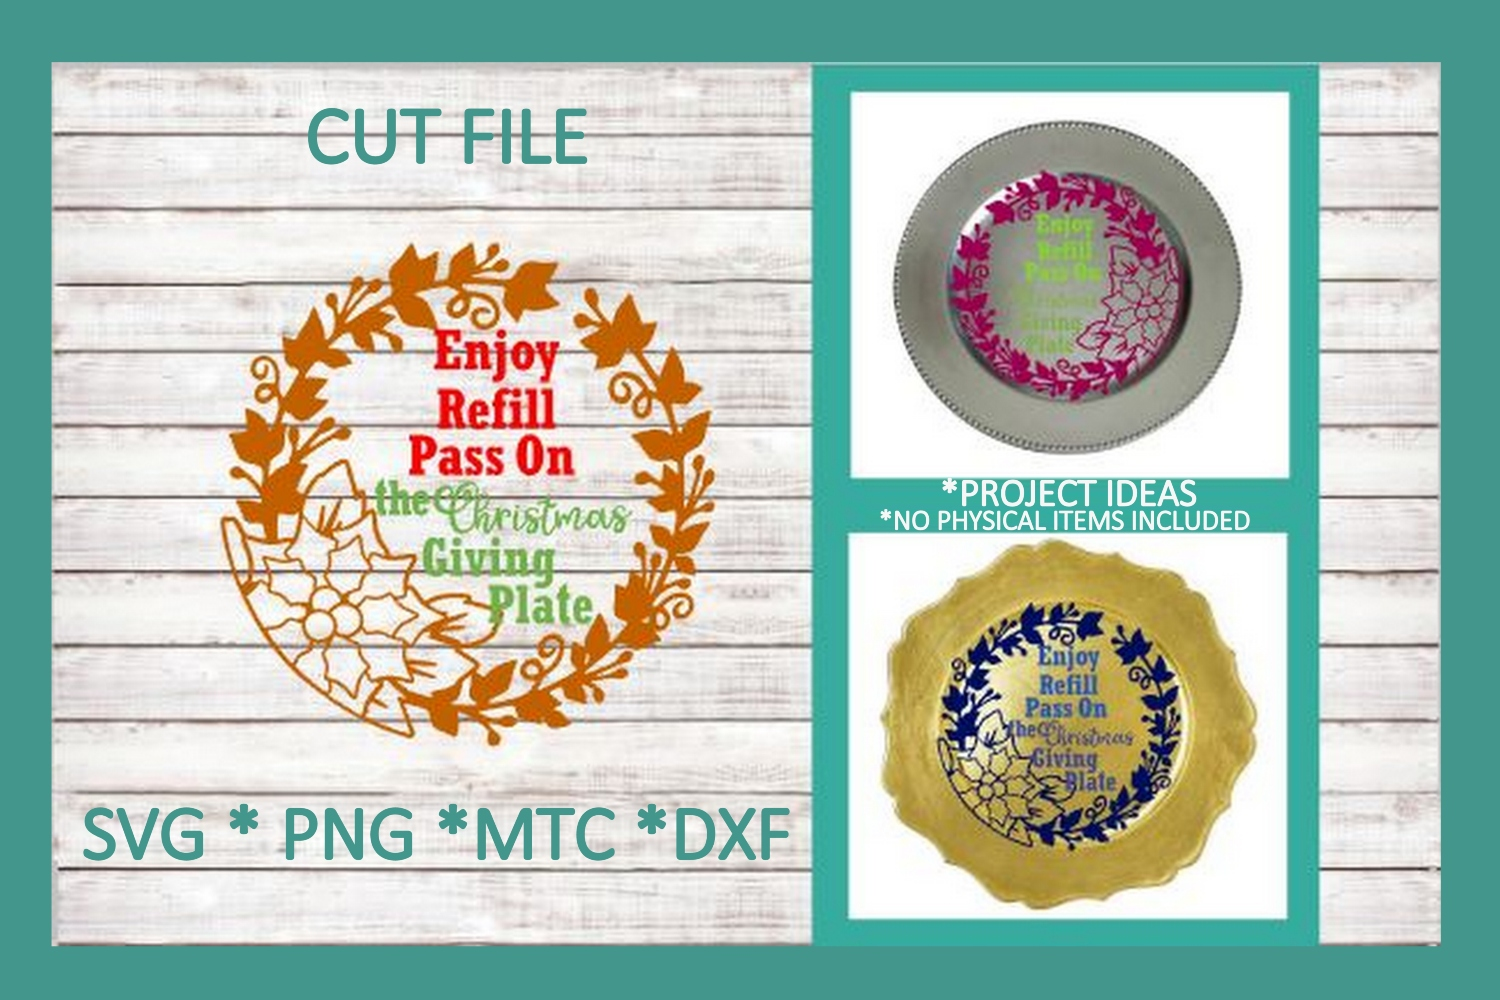 SVG Cut File Christmas Giving Plate BUNDLE Set 01 example image 3